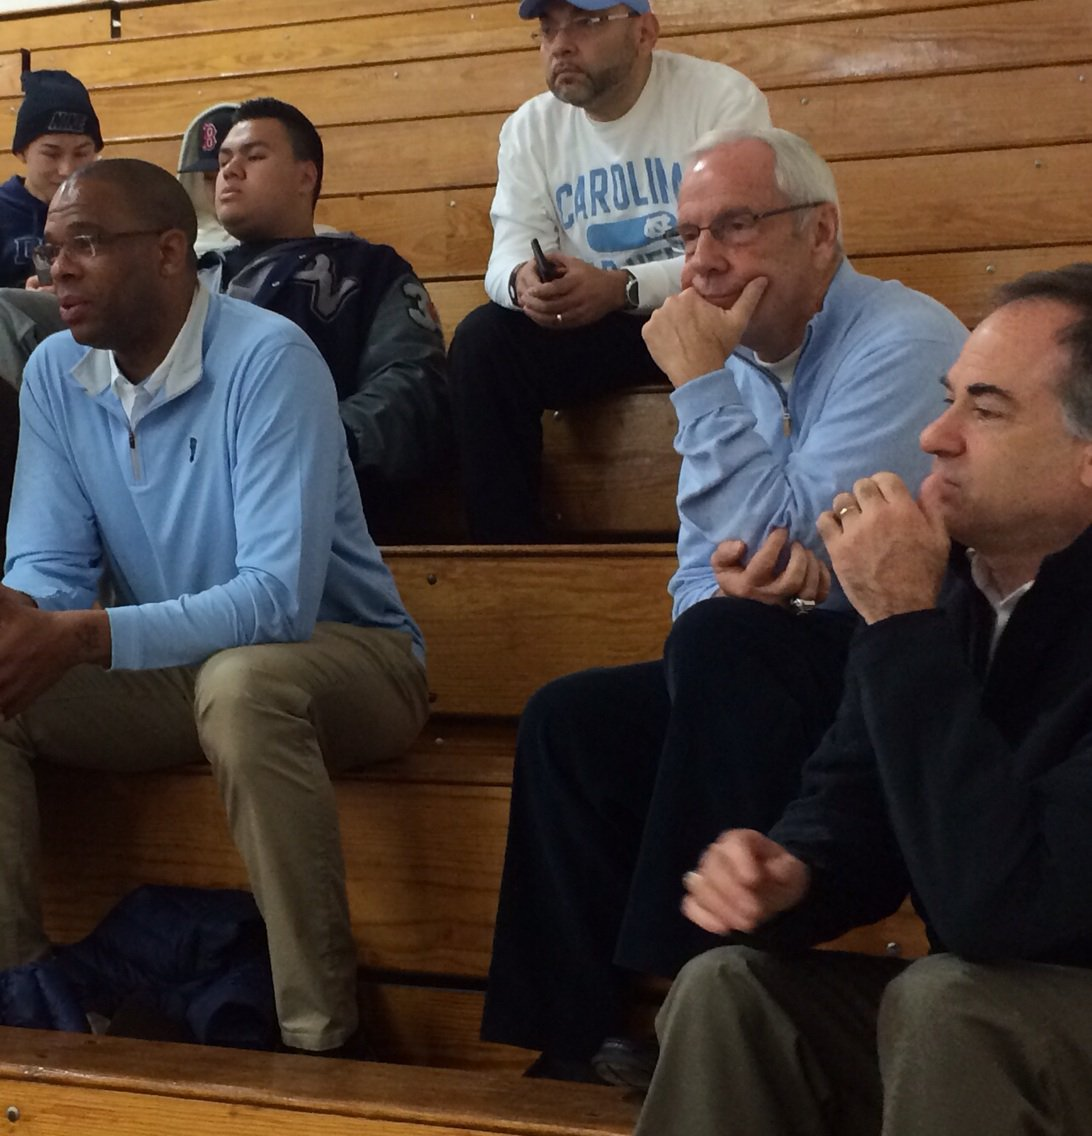 North Carolina's Roy Williams is in town for the McDonalds Classic